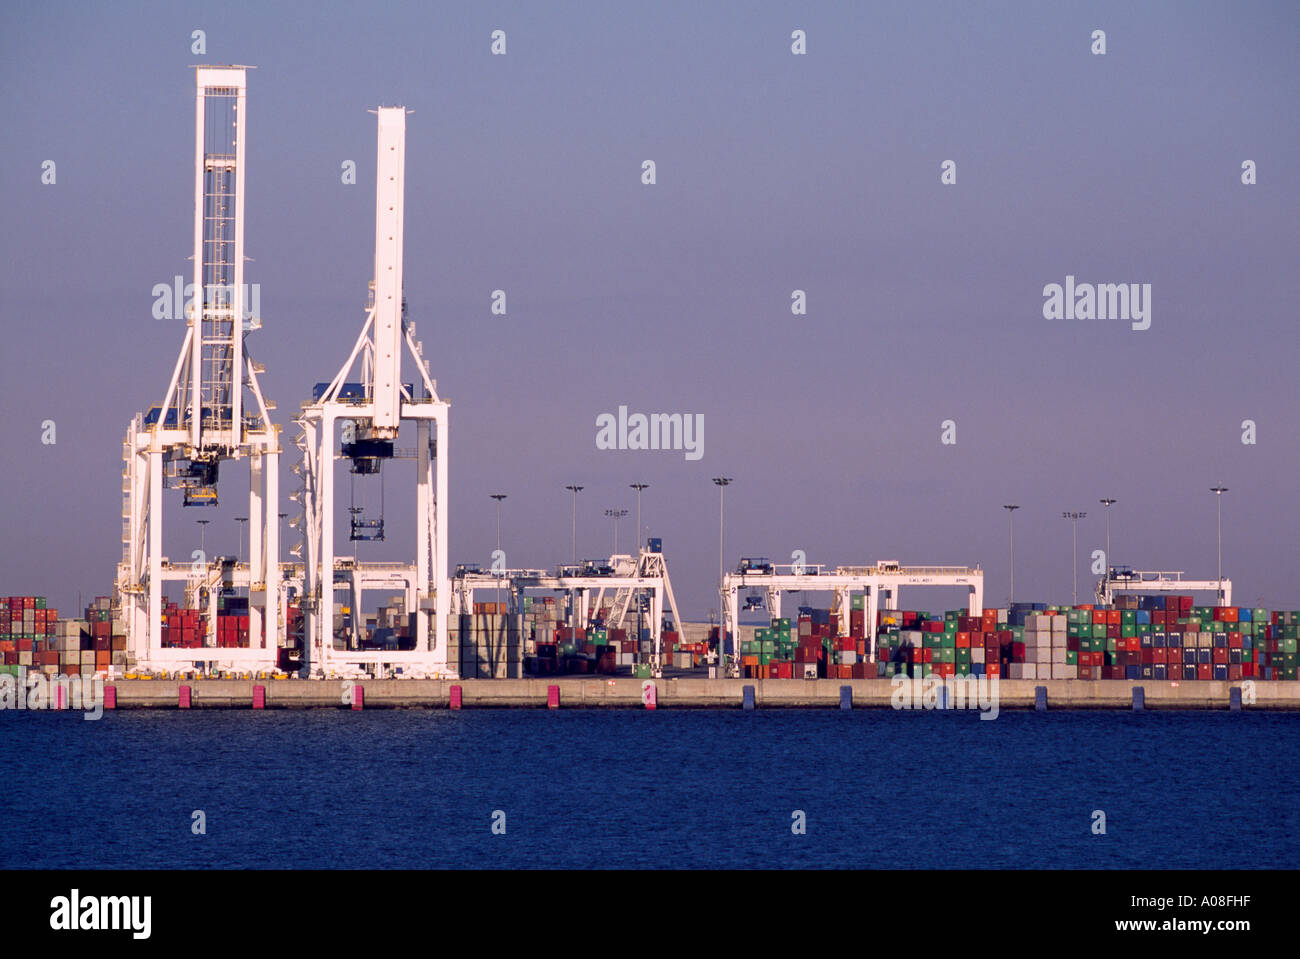 Container loading Facilities at Deltaport at Roberts Bank near Vancouver British Columbia Canada - Stock Image